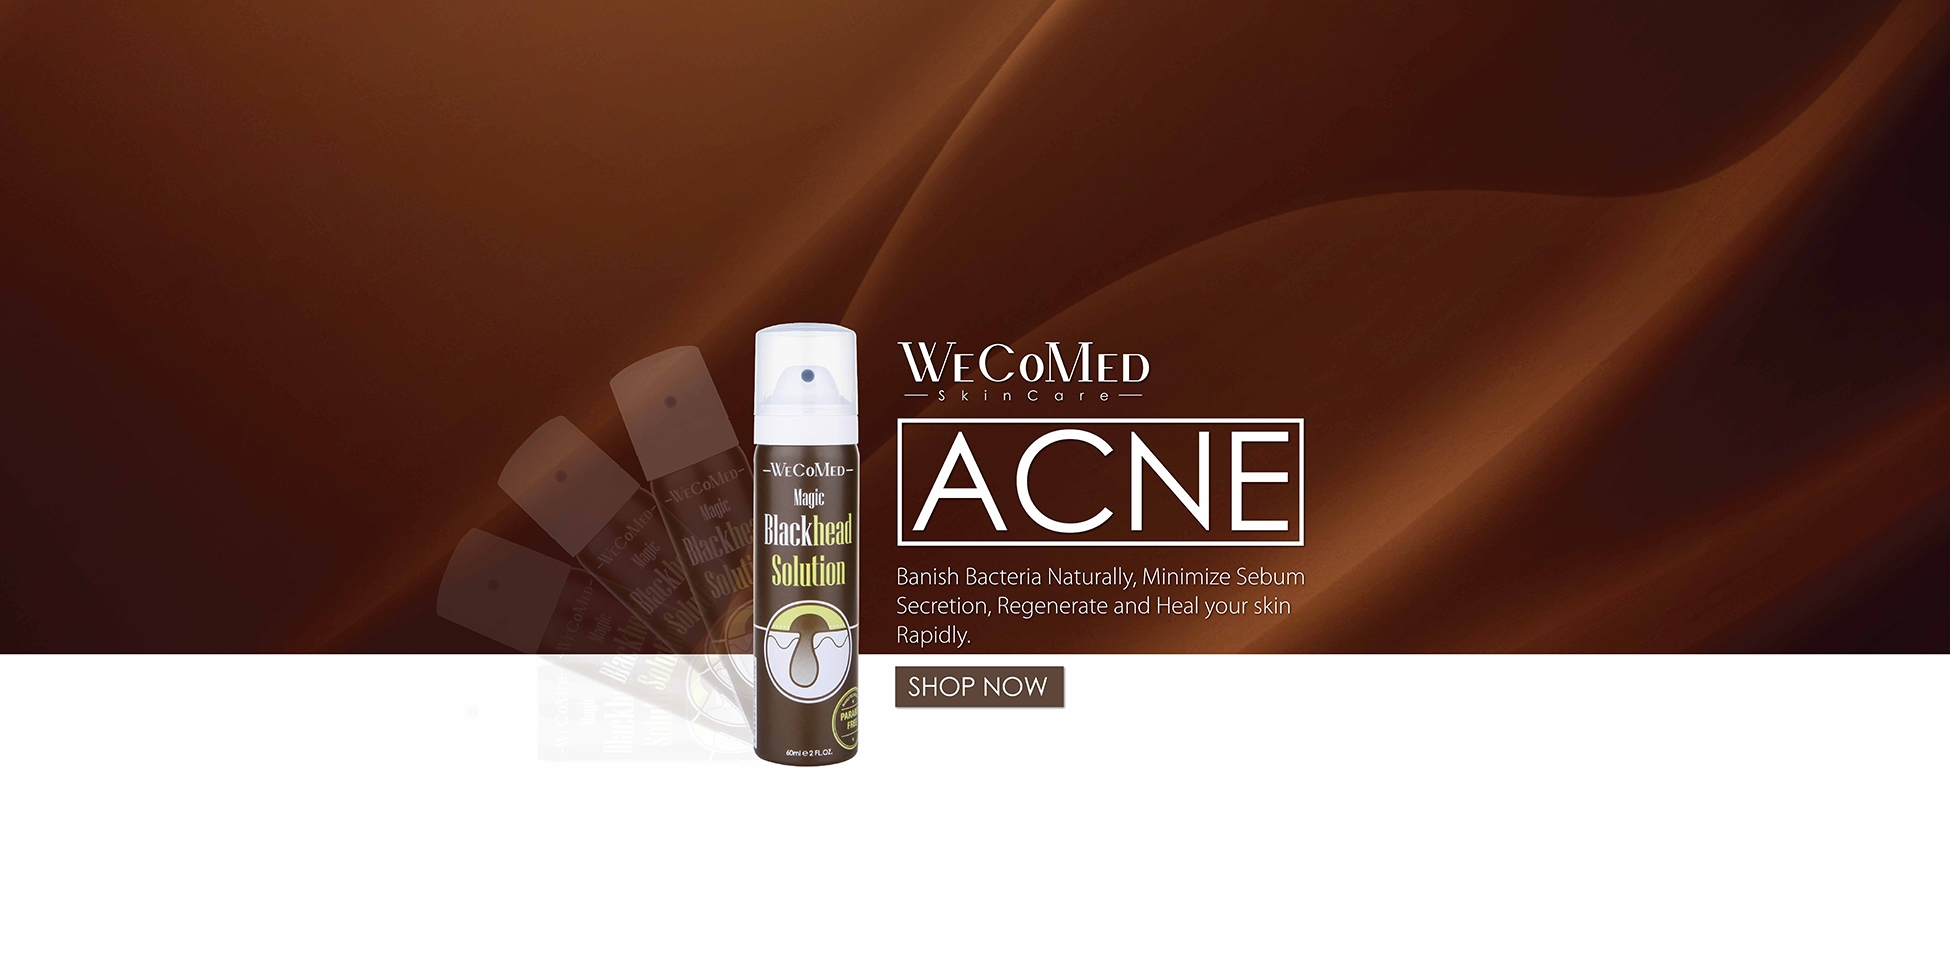 Shop Acne SkinCare Online at WeCoMed Malaysia & Singapore